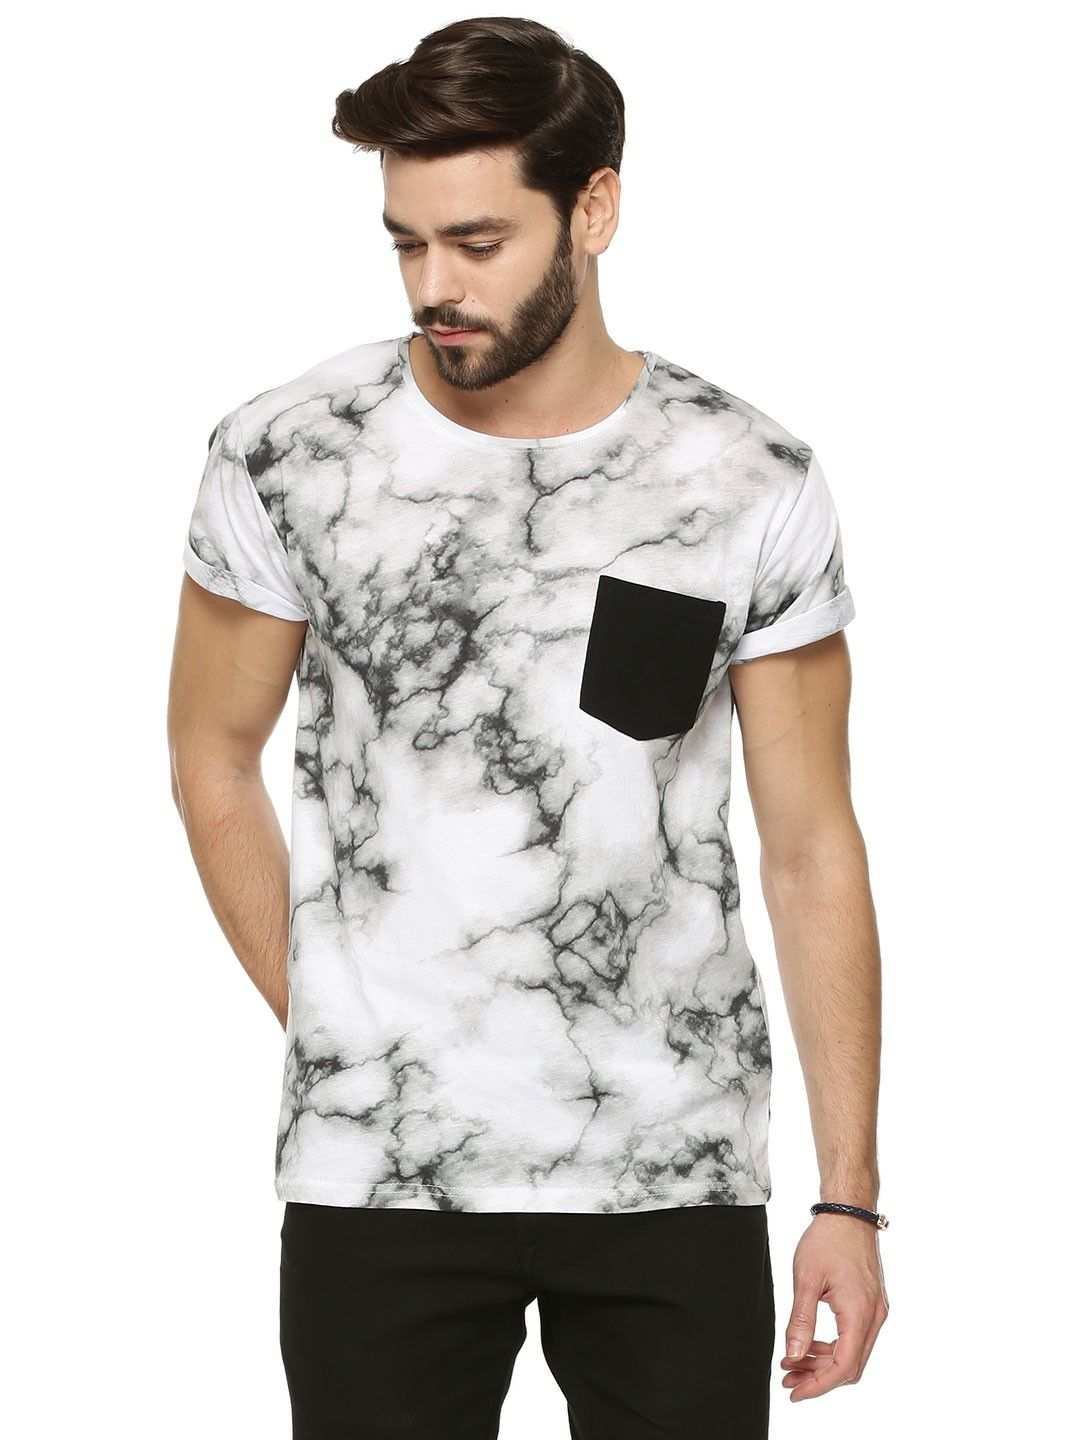 Solid Marble Print T Shirt With Pocket For Men S